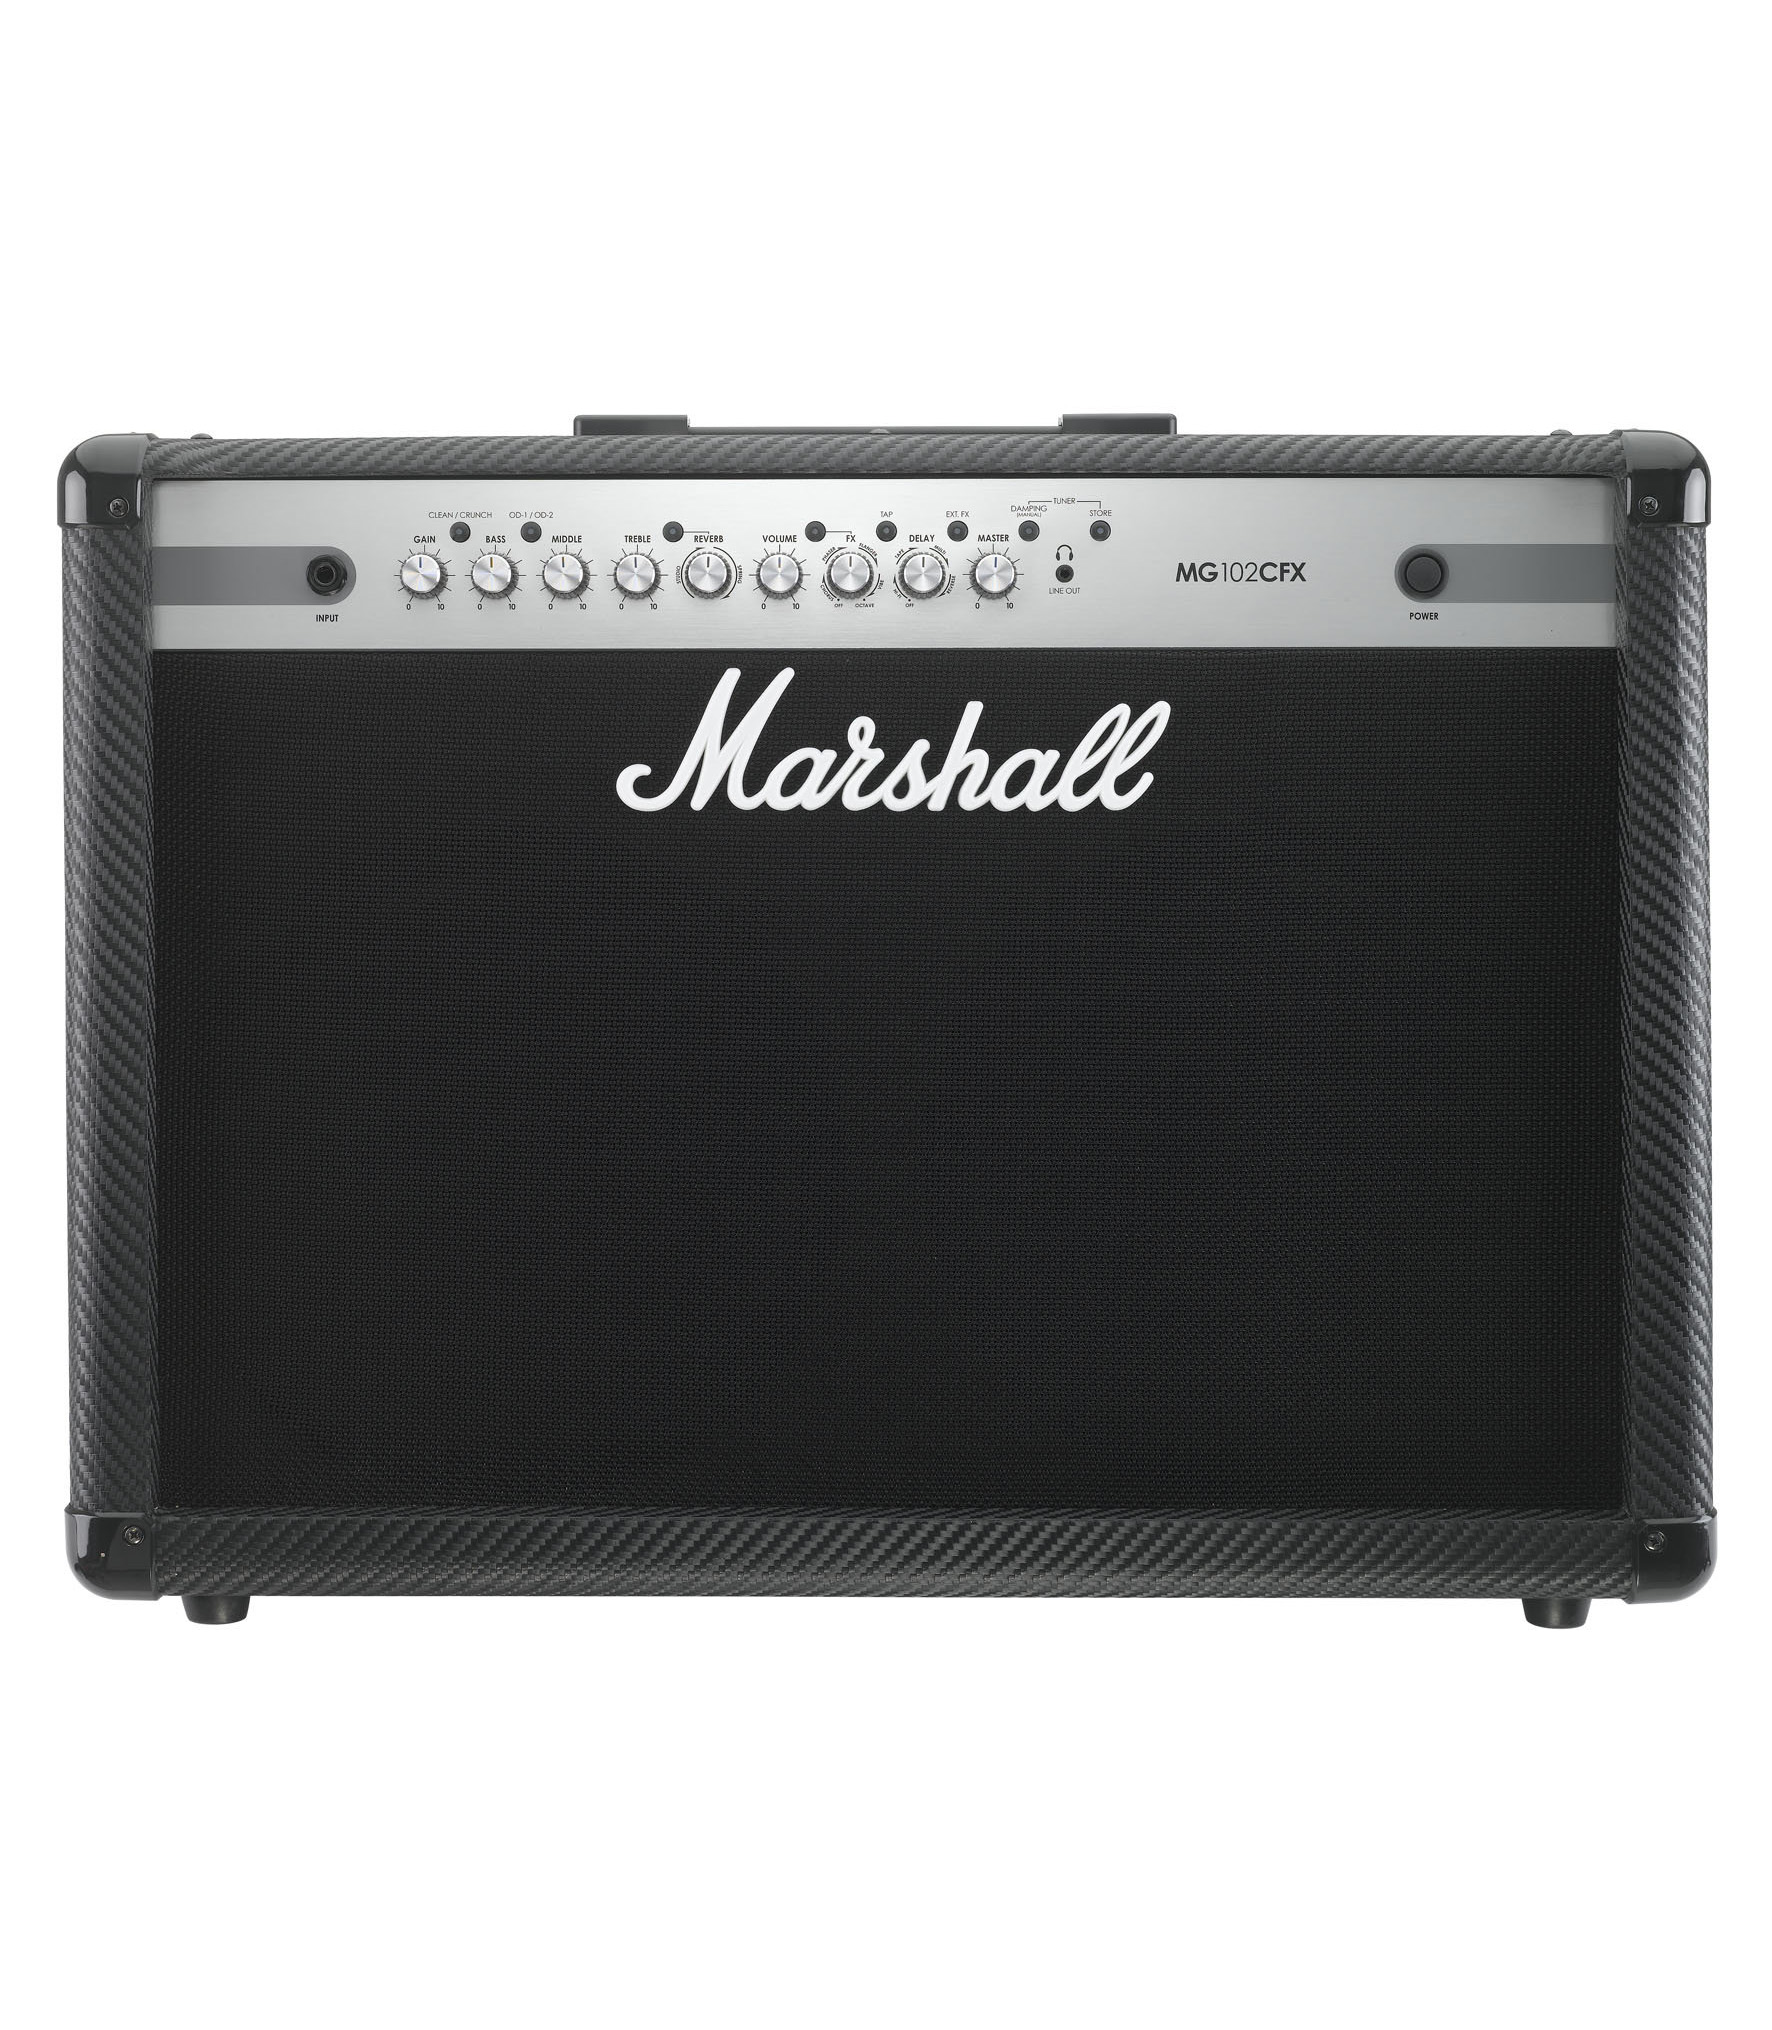 Buy marshall - MG102CFX Solid state Guitar Amp 4 Channel